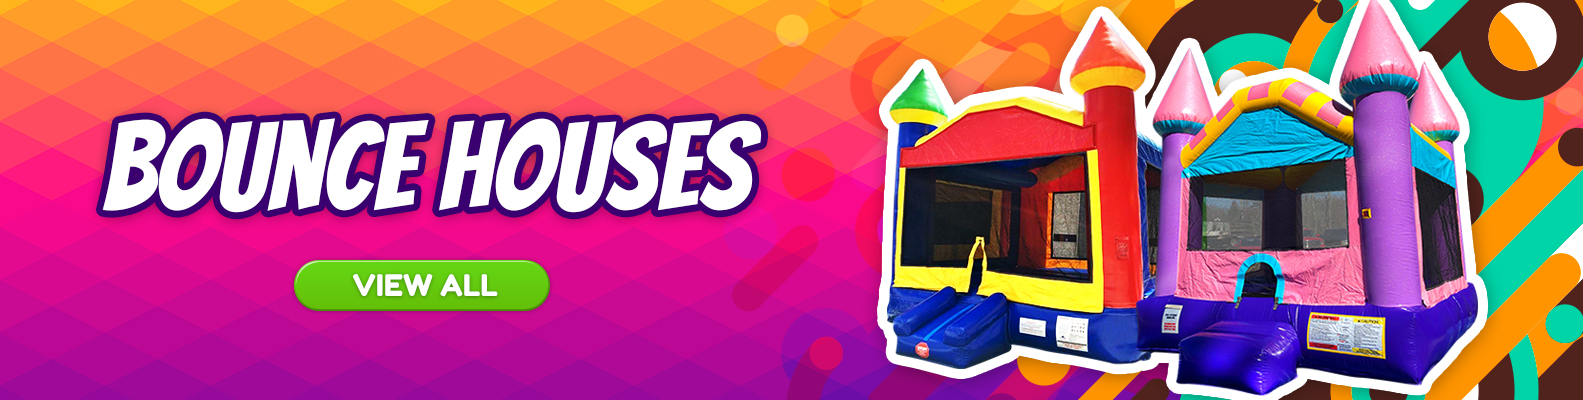 Bounce House Rentals Concord NH | EZ Bounce New England